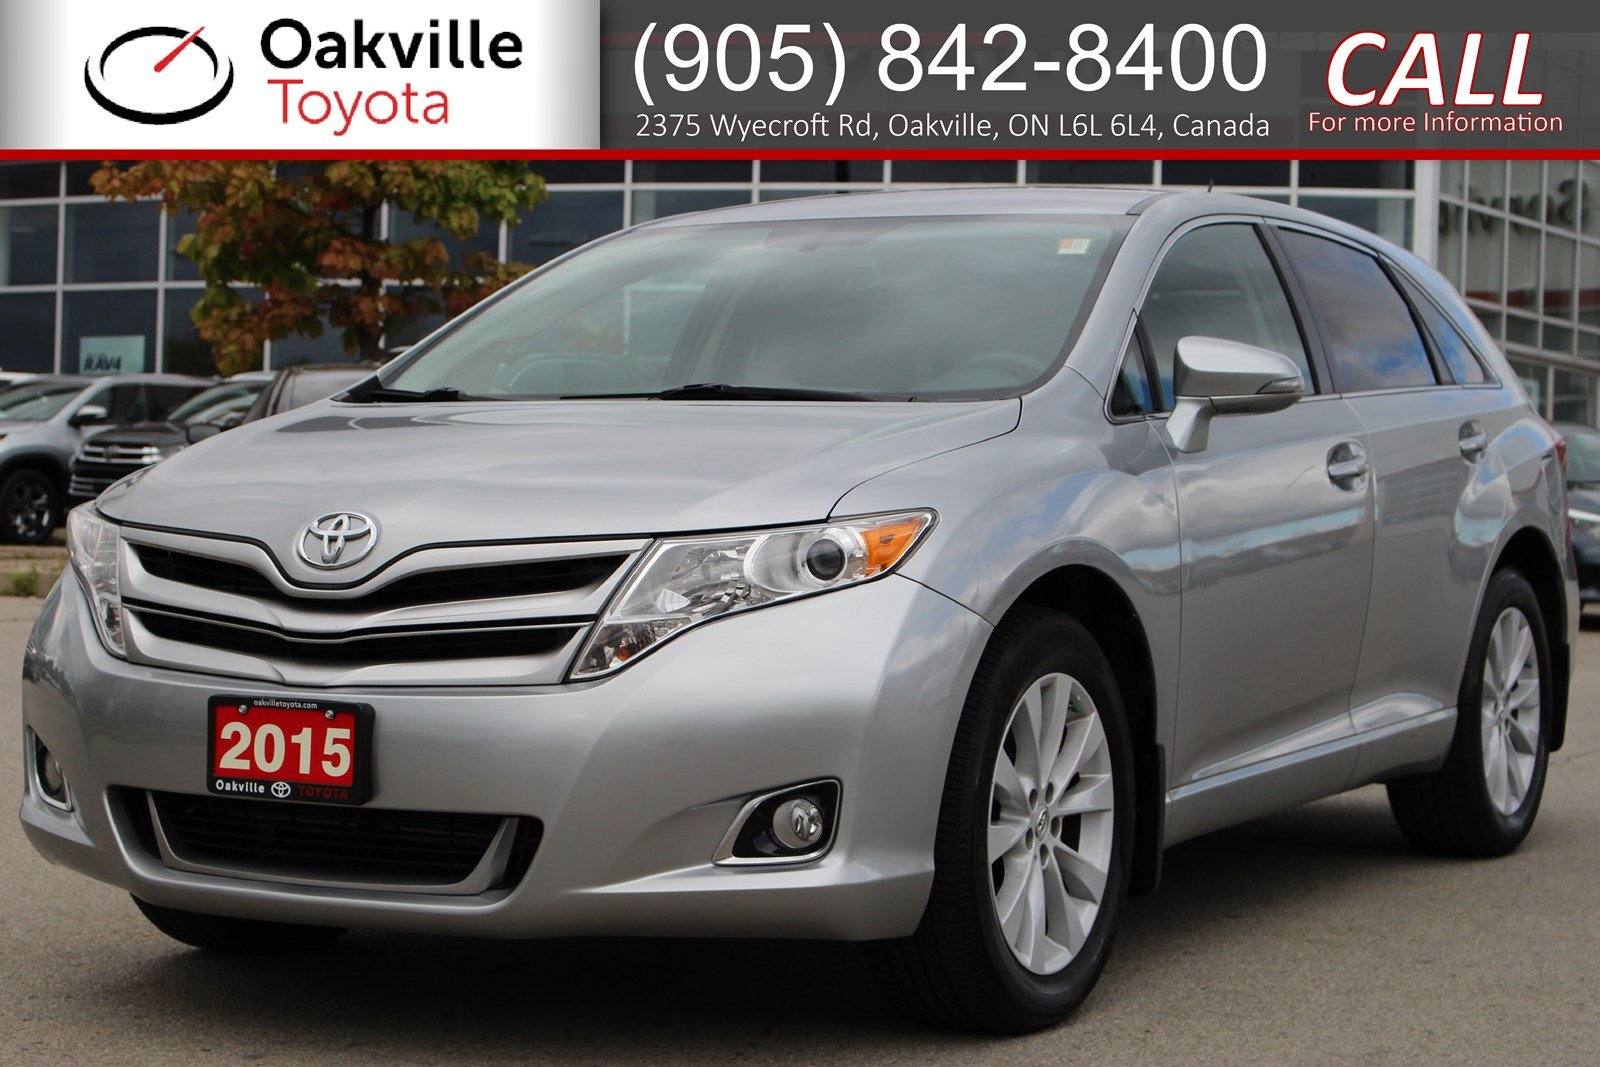 Pre-Owned 2015 Toyota Venza with Clean Carfax